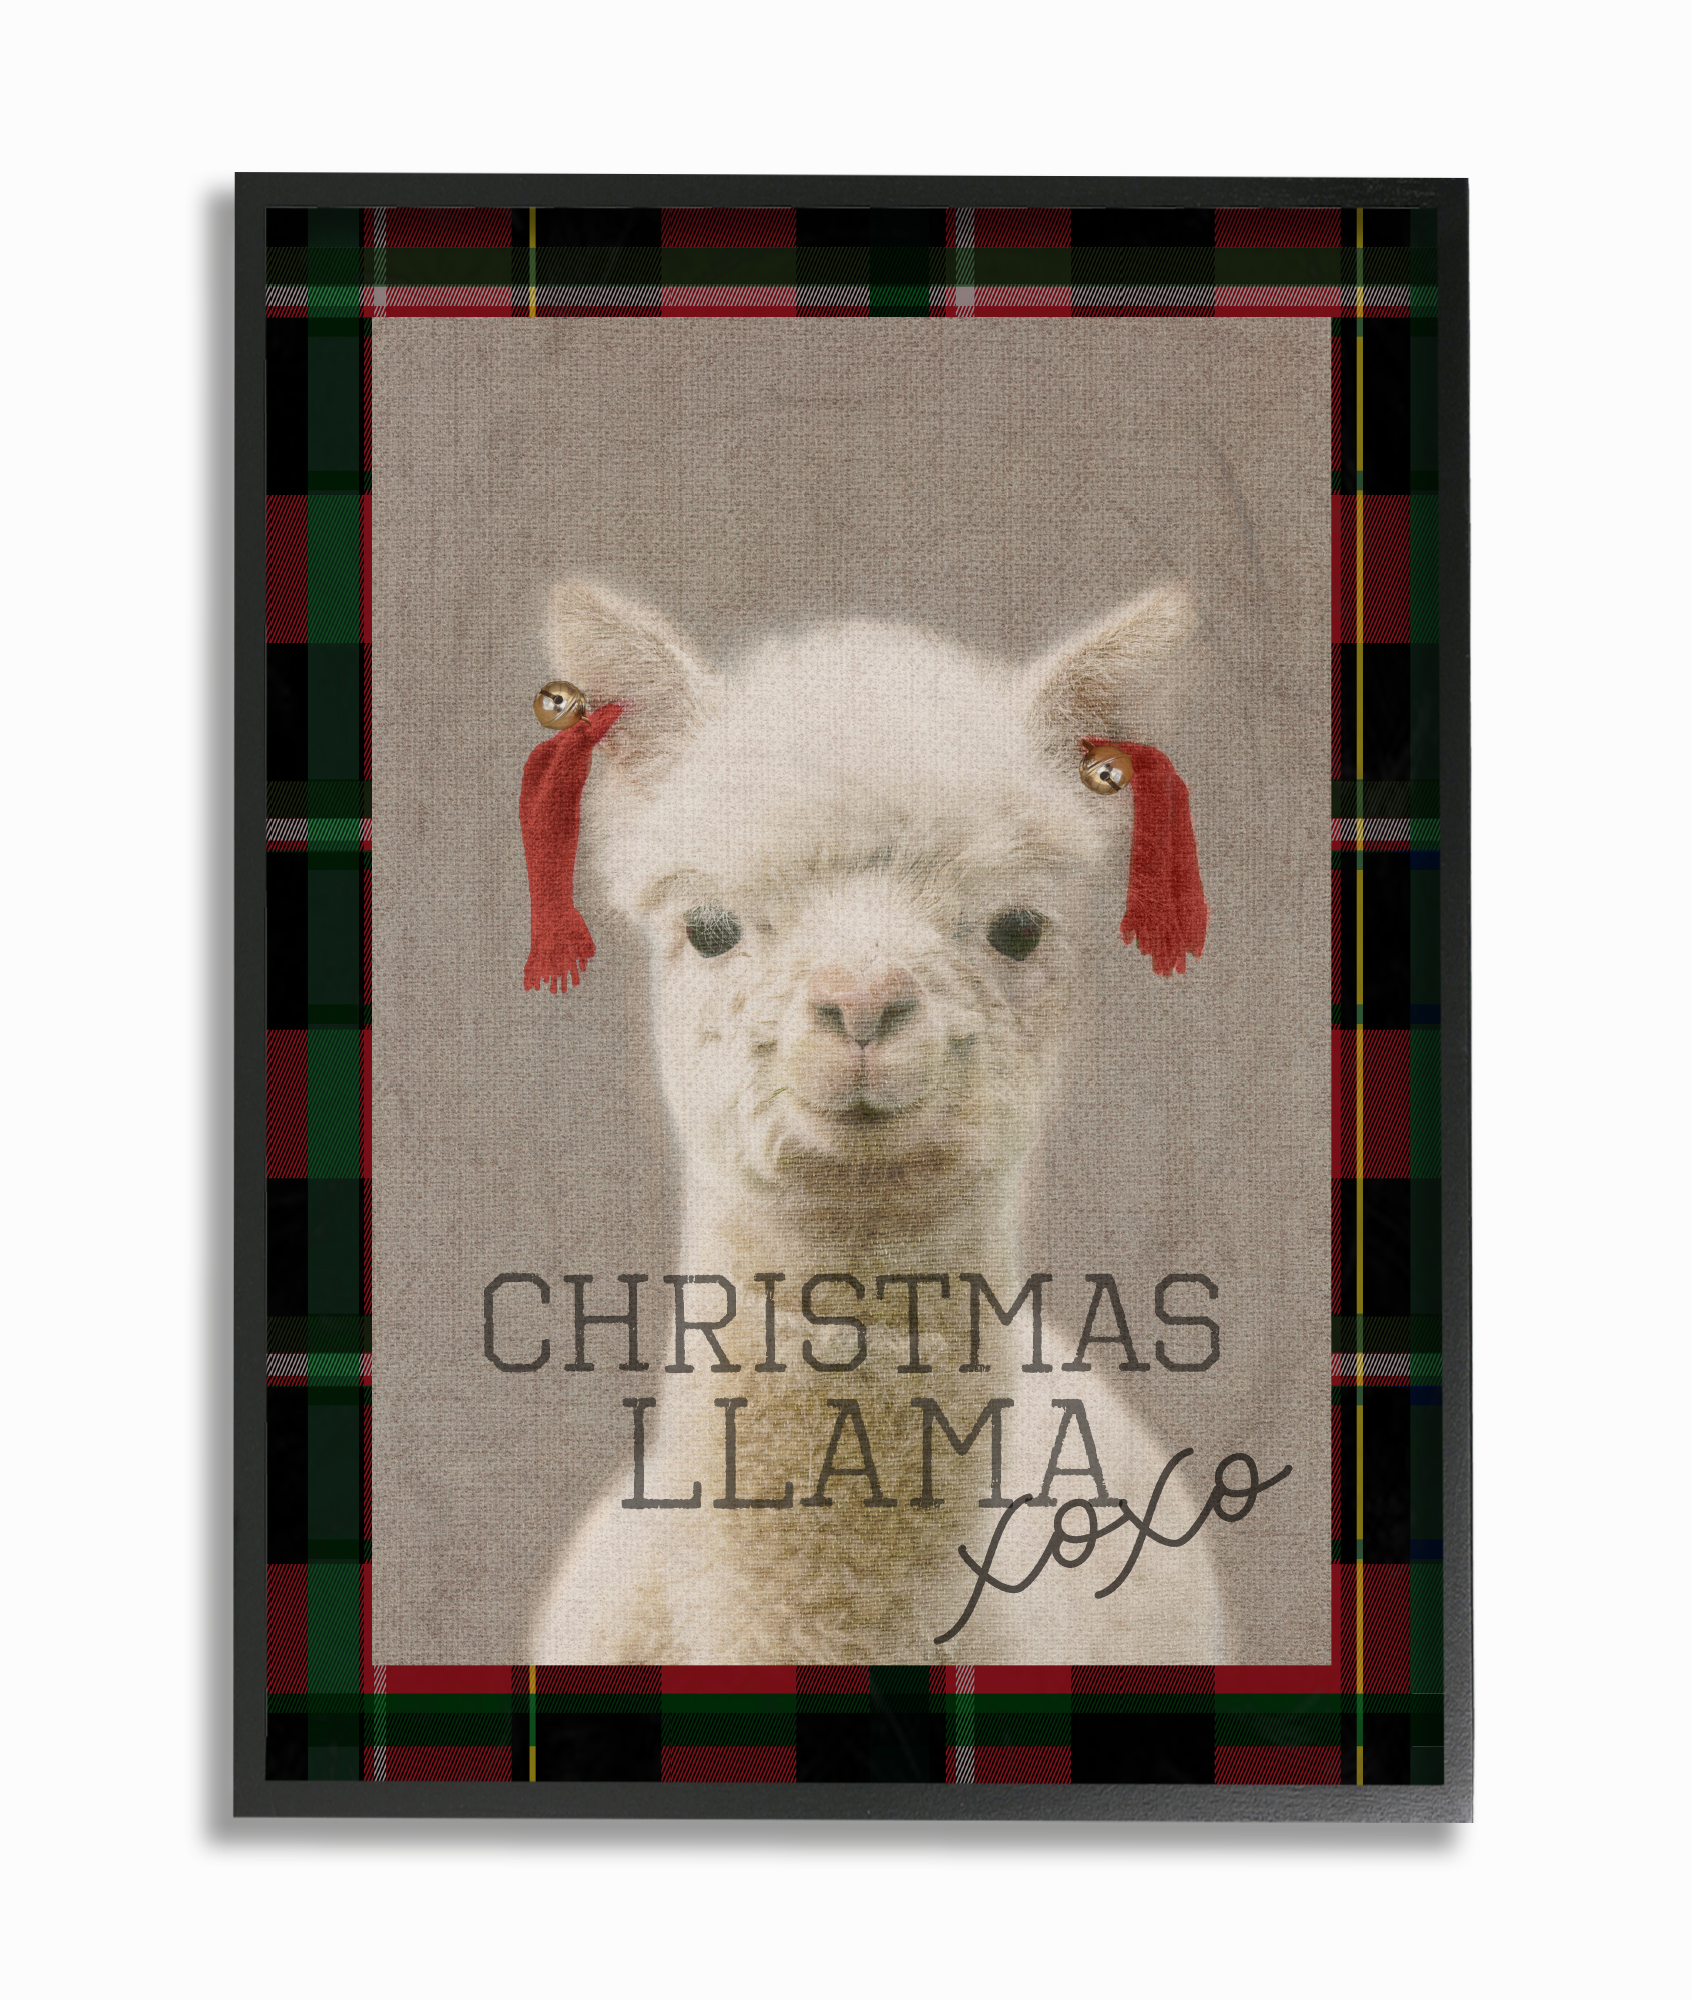 The Stupell Home Decor Collection Christmas Llama Xoxo Framed Giclee Texturized Art by Stupell Industries